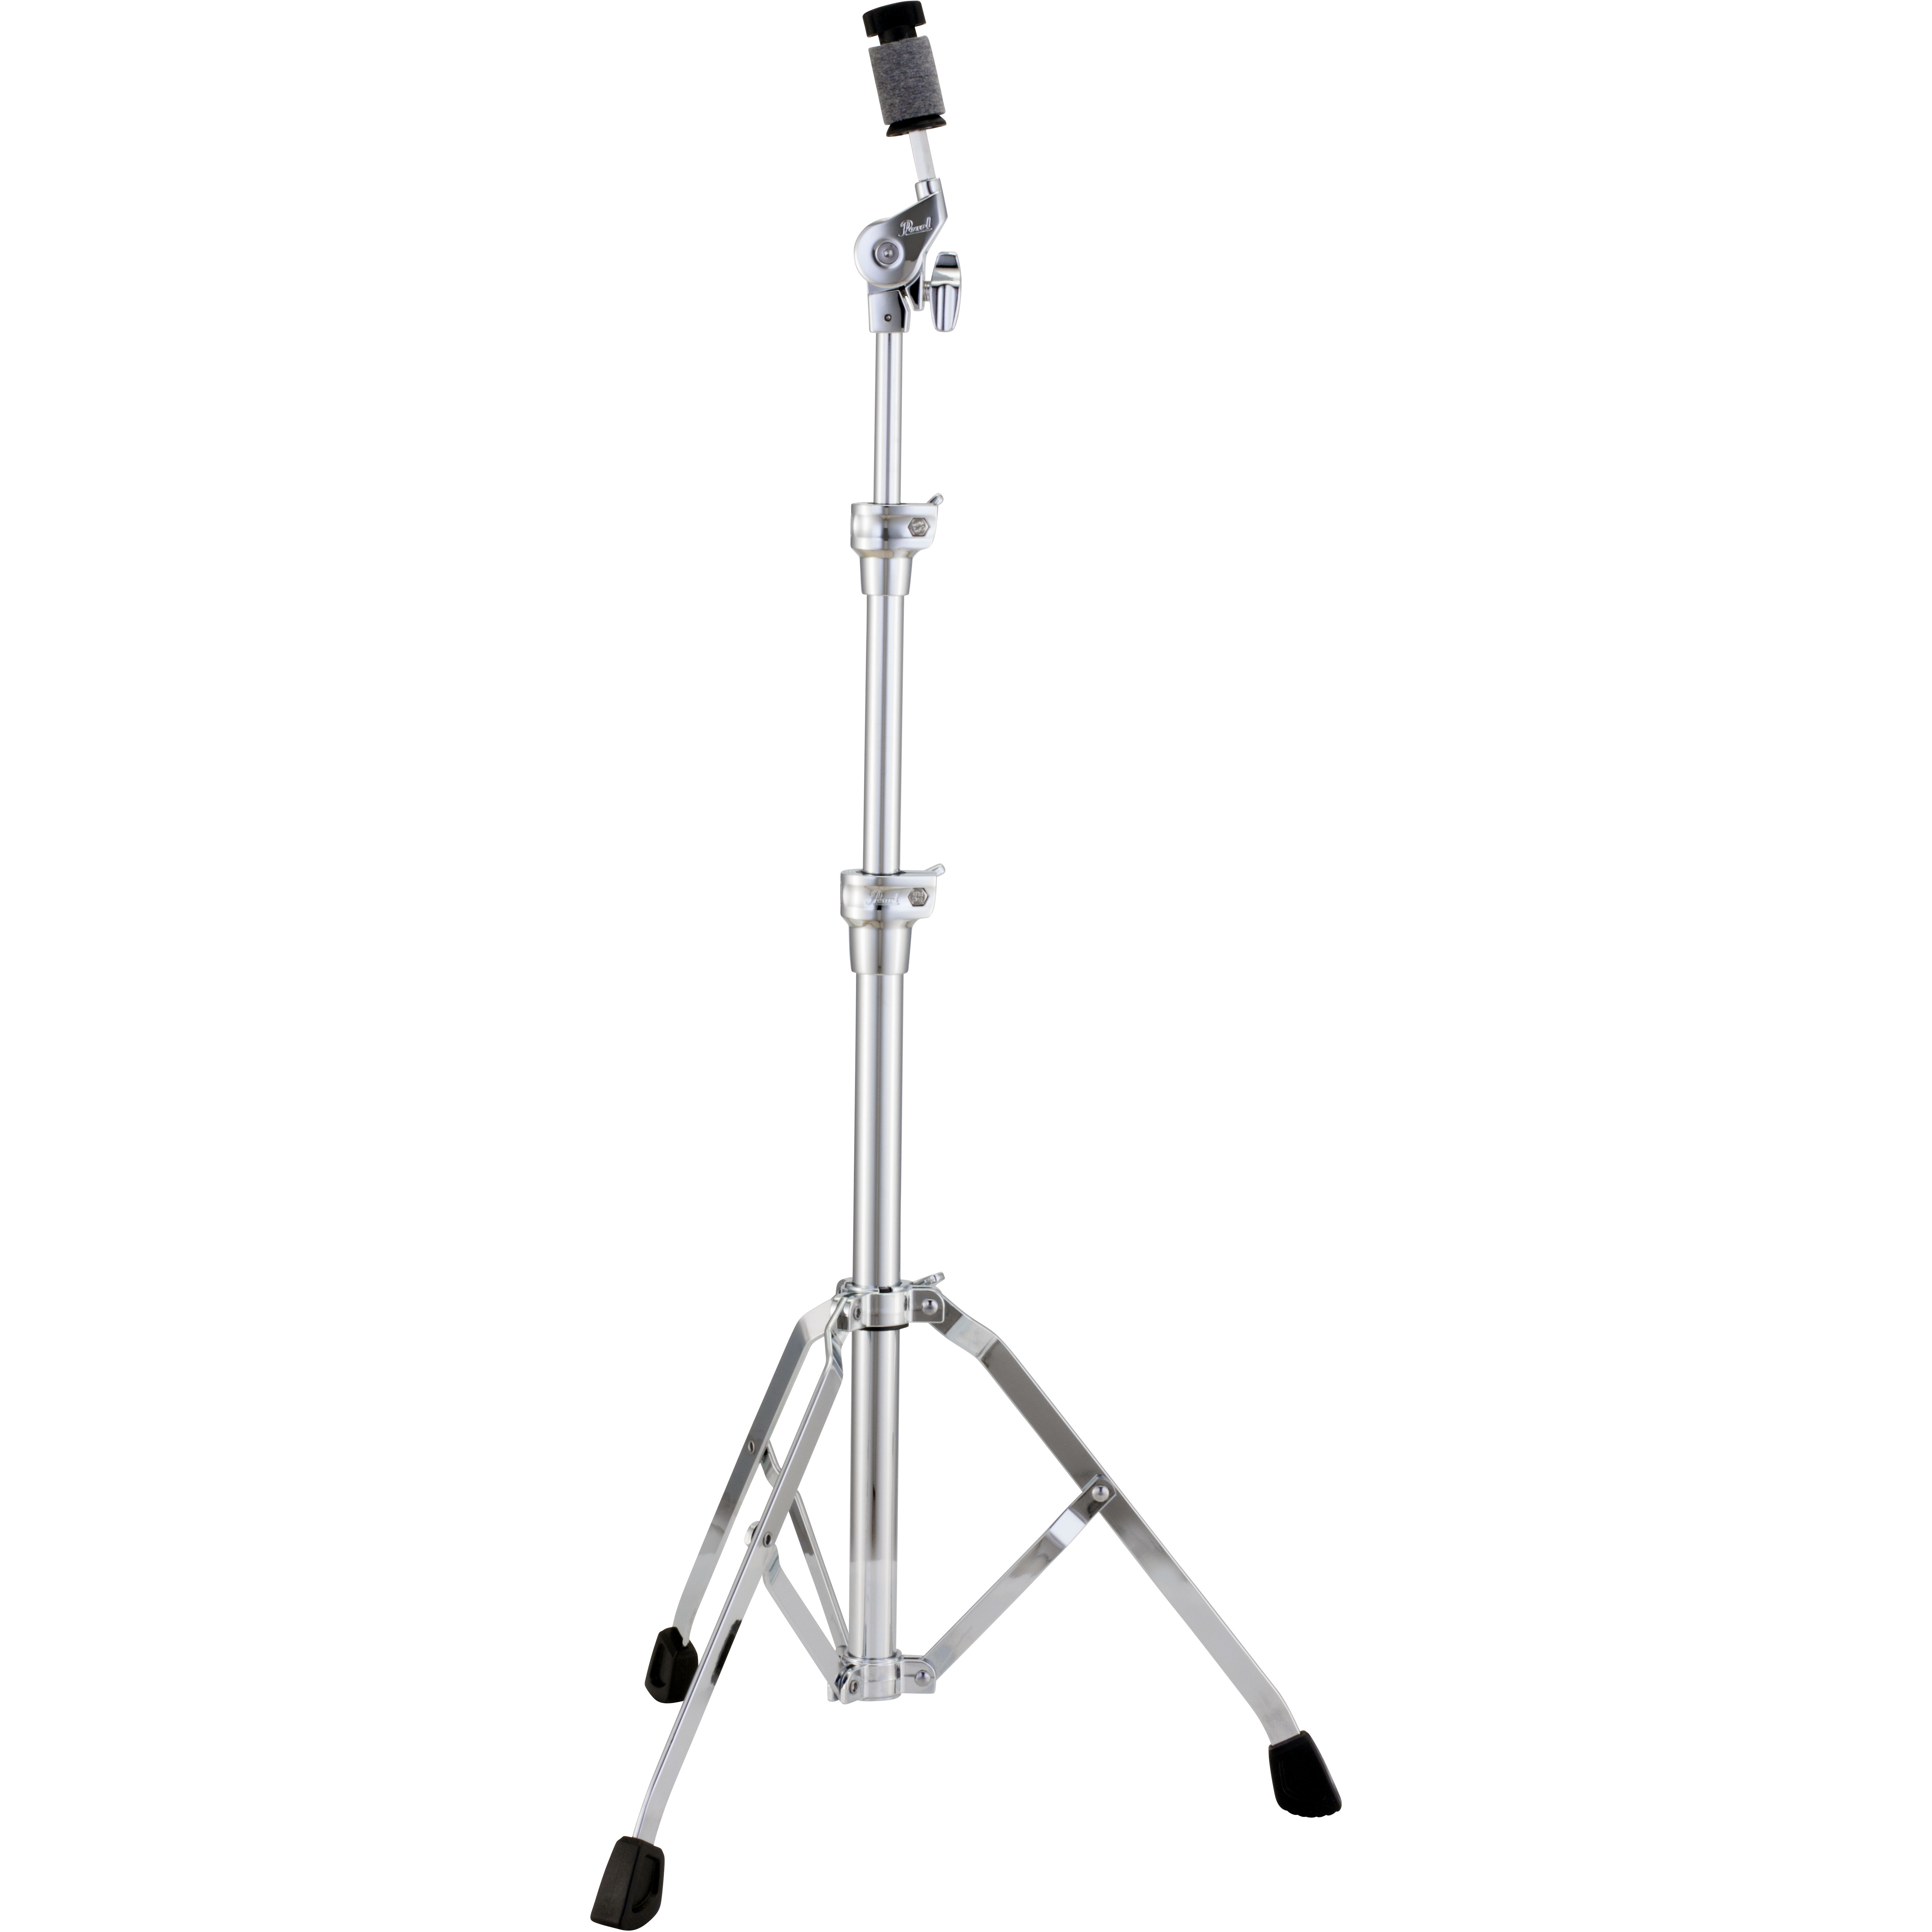 Pearl 930 Series Single Braced Uni-Lock Straight Cymbal Stand